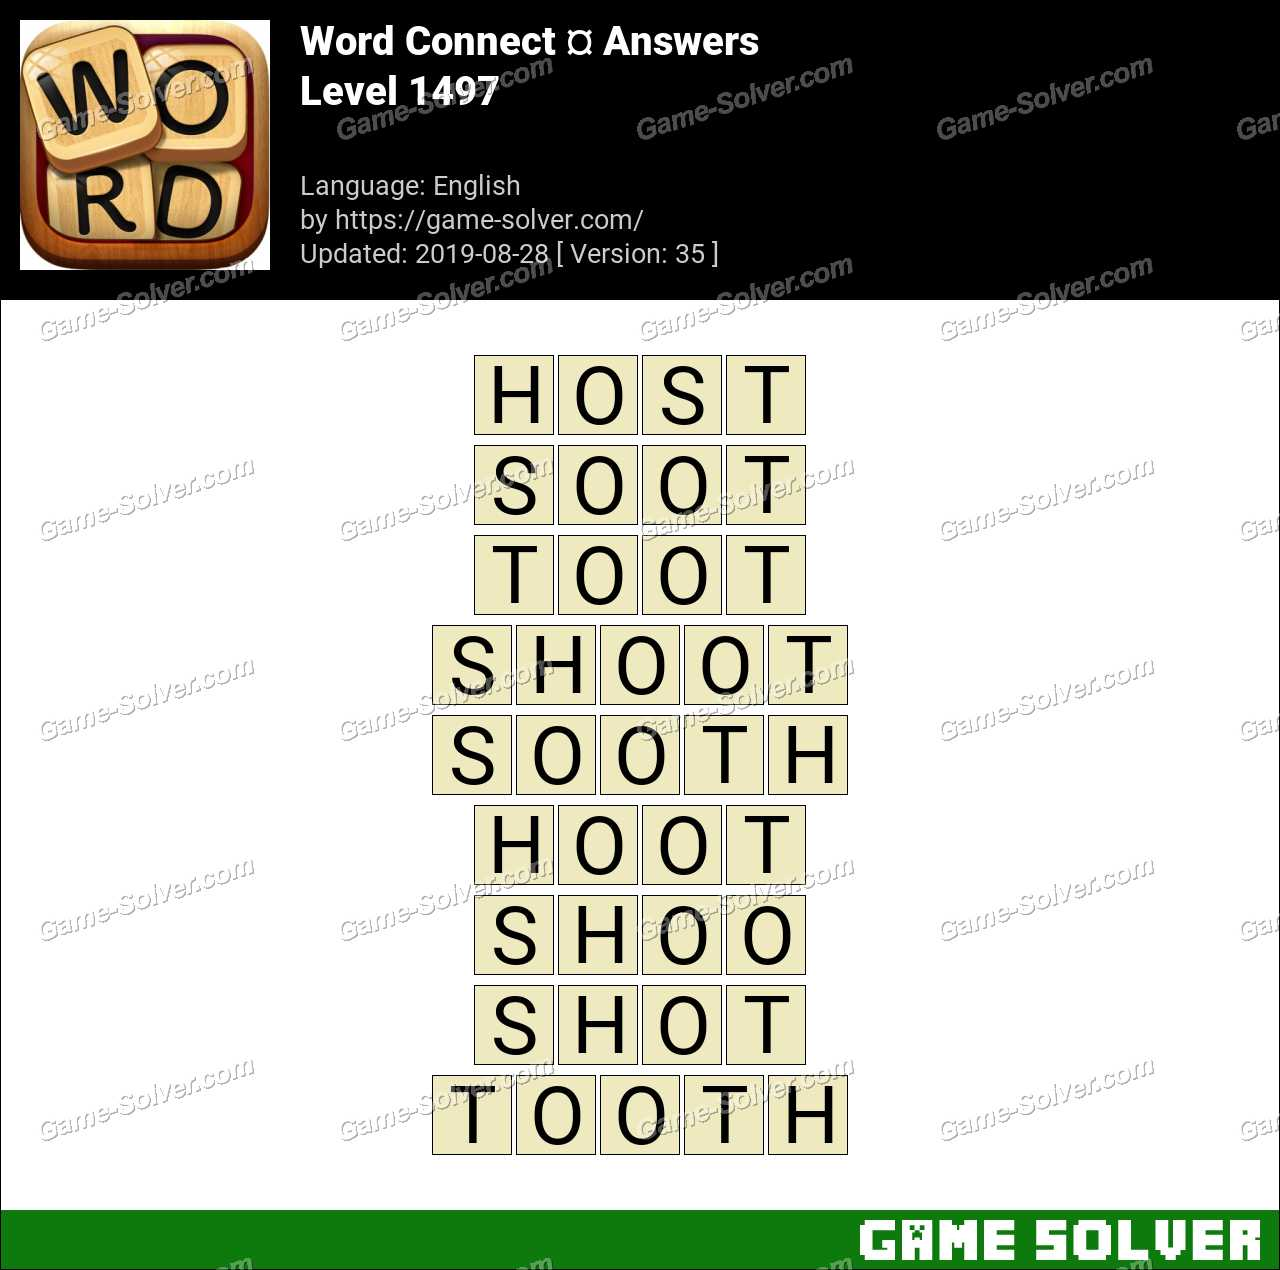 Word Connect Level 1497 Answers